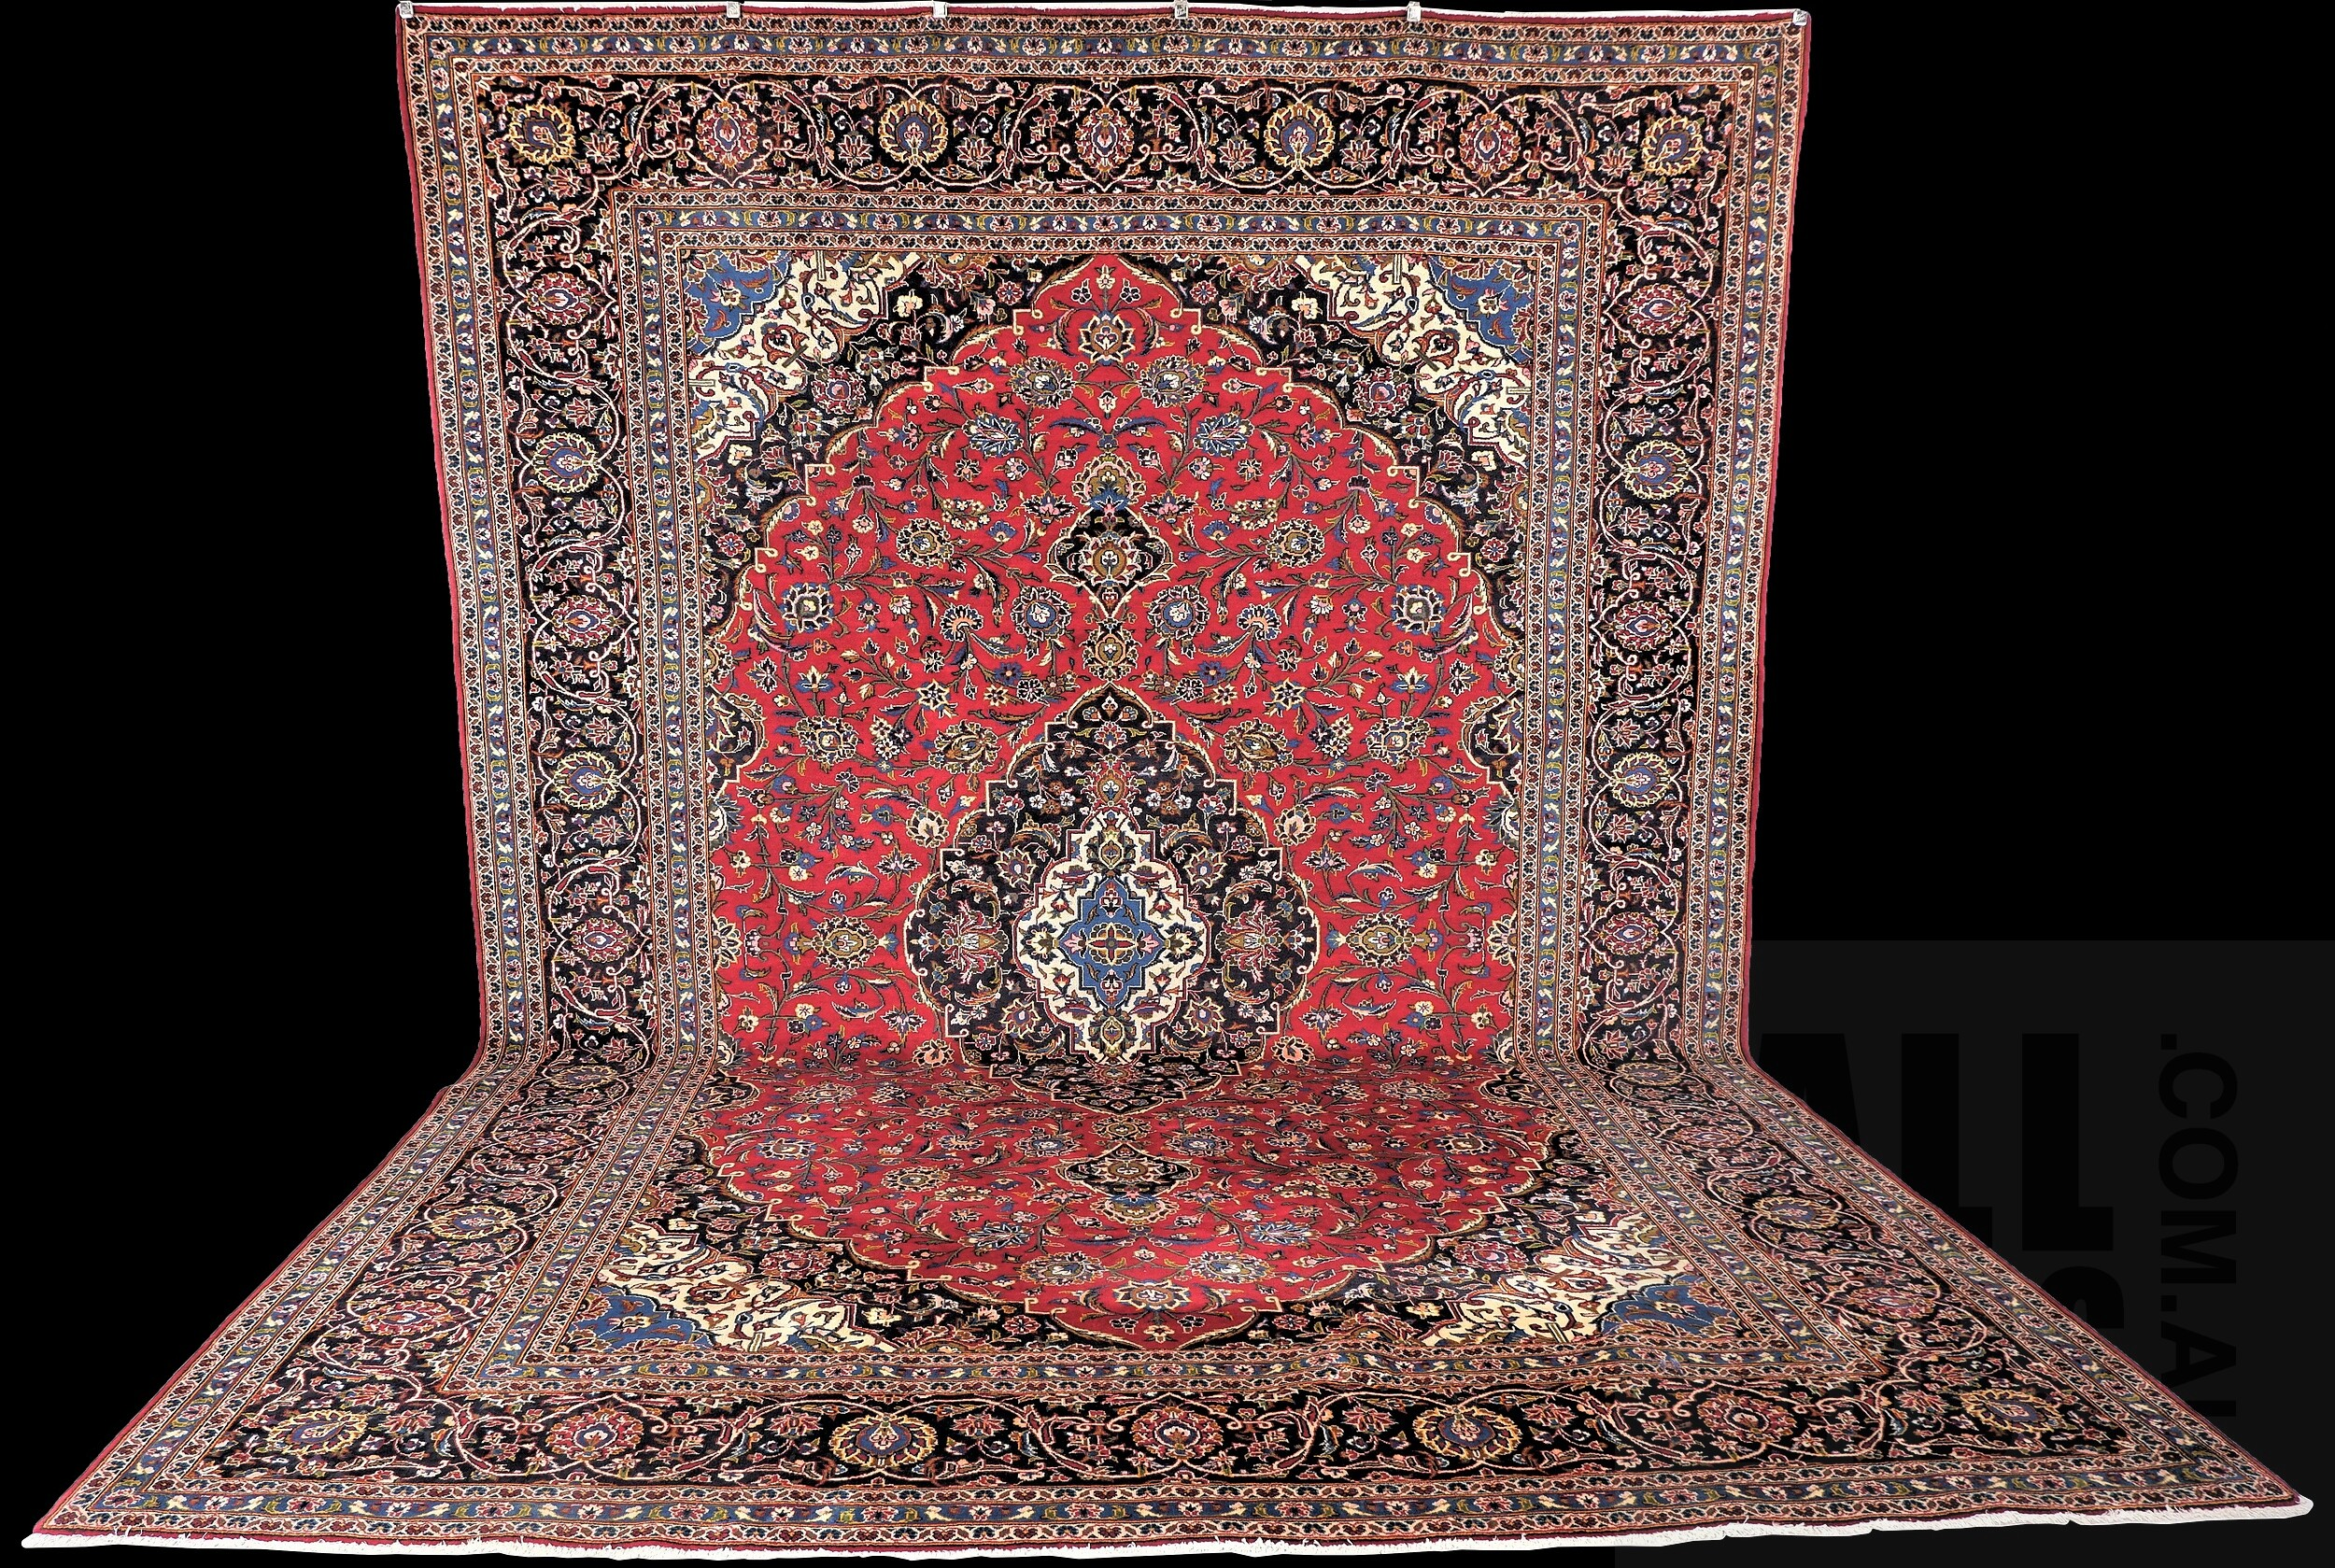 'Magnificent Vintage Persian Kashan Hand Knotted Kork Wool Room Sized Carpet with Classic Book Cover Design,Madder Red Field and Shah Abbas Motif '